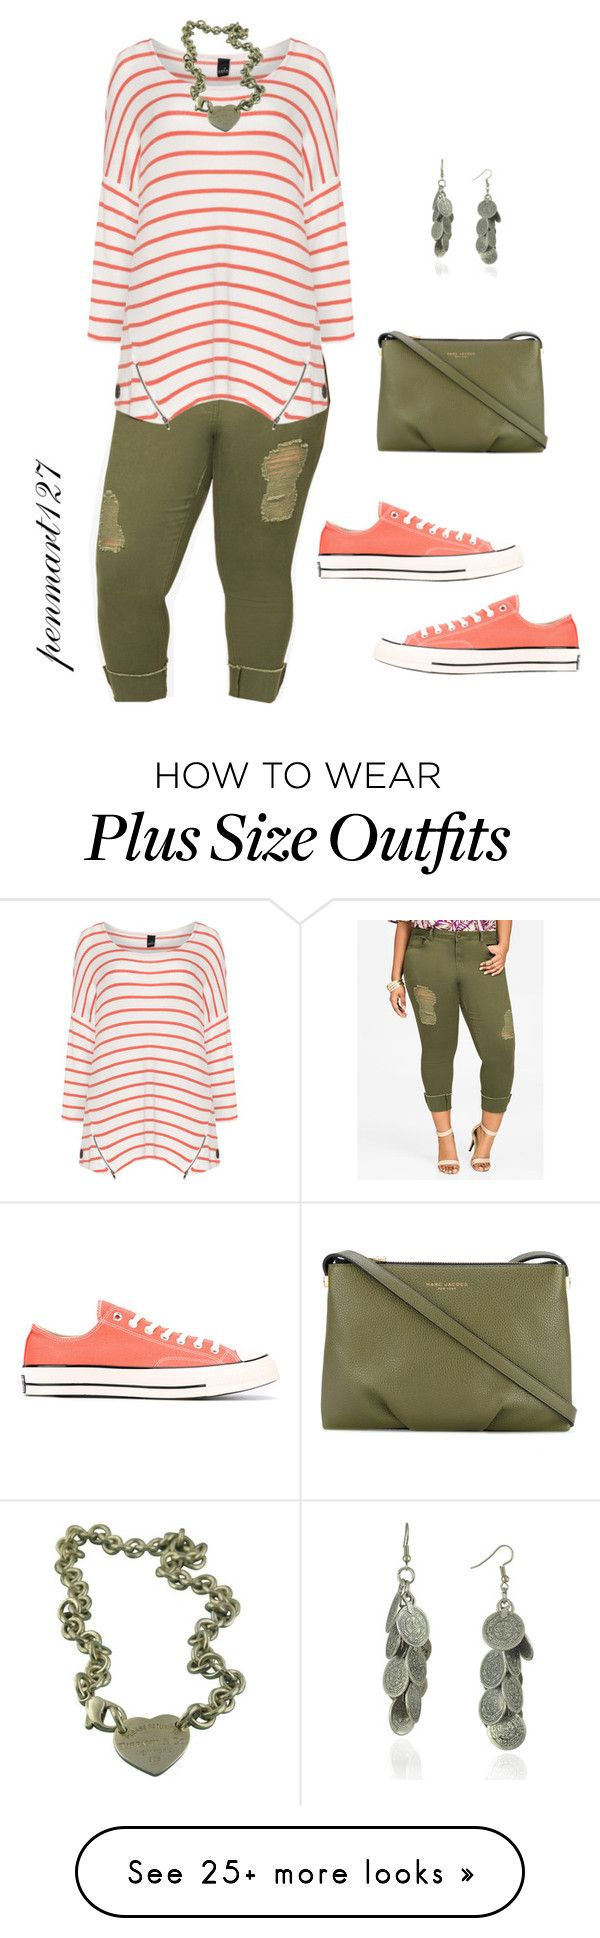 """Peach and Olive #Plussize"" by penny-martin on Polyvore featuring Ashley Stewart, Marc Jacobs, Converse, Tiffany & Co. and WithChic"